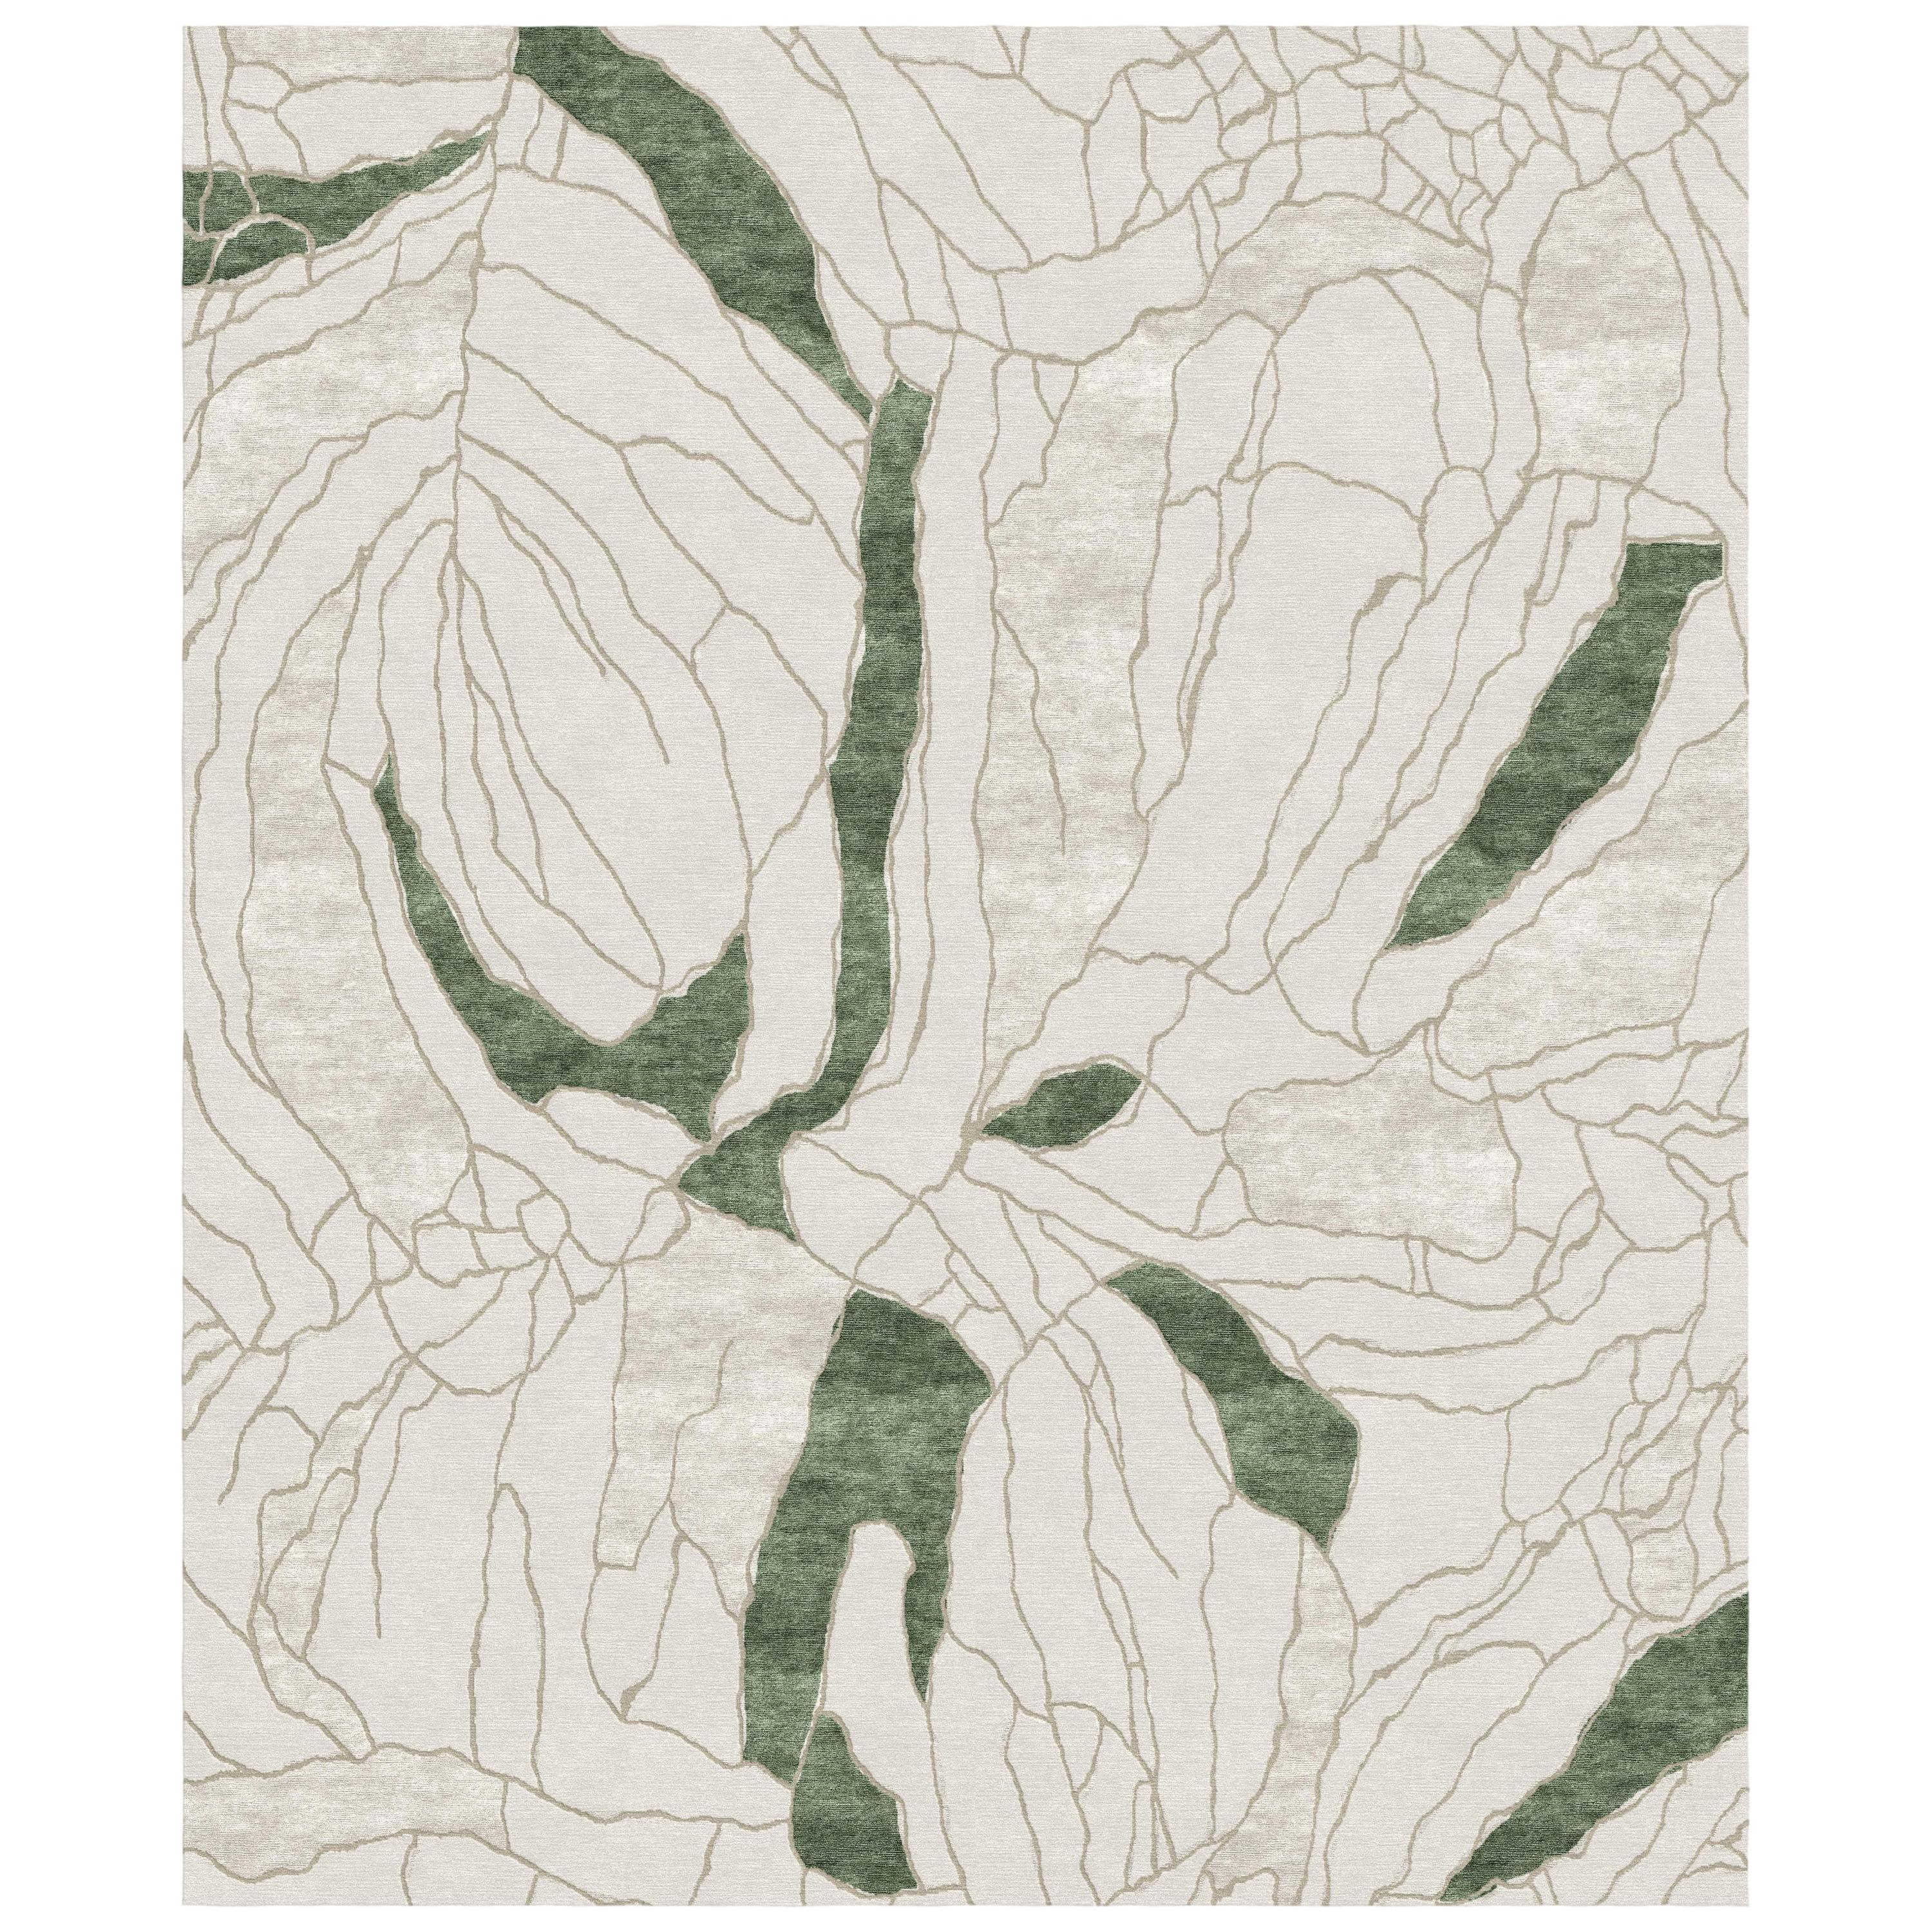 Narcissus - Beige Green Hand Knotted Wool Bamboo Silk Rug